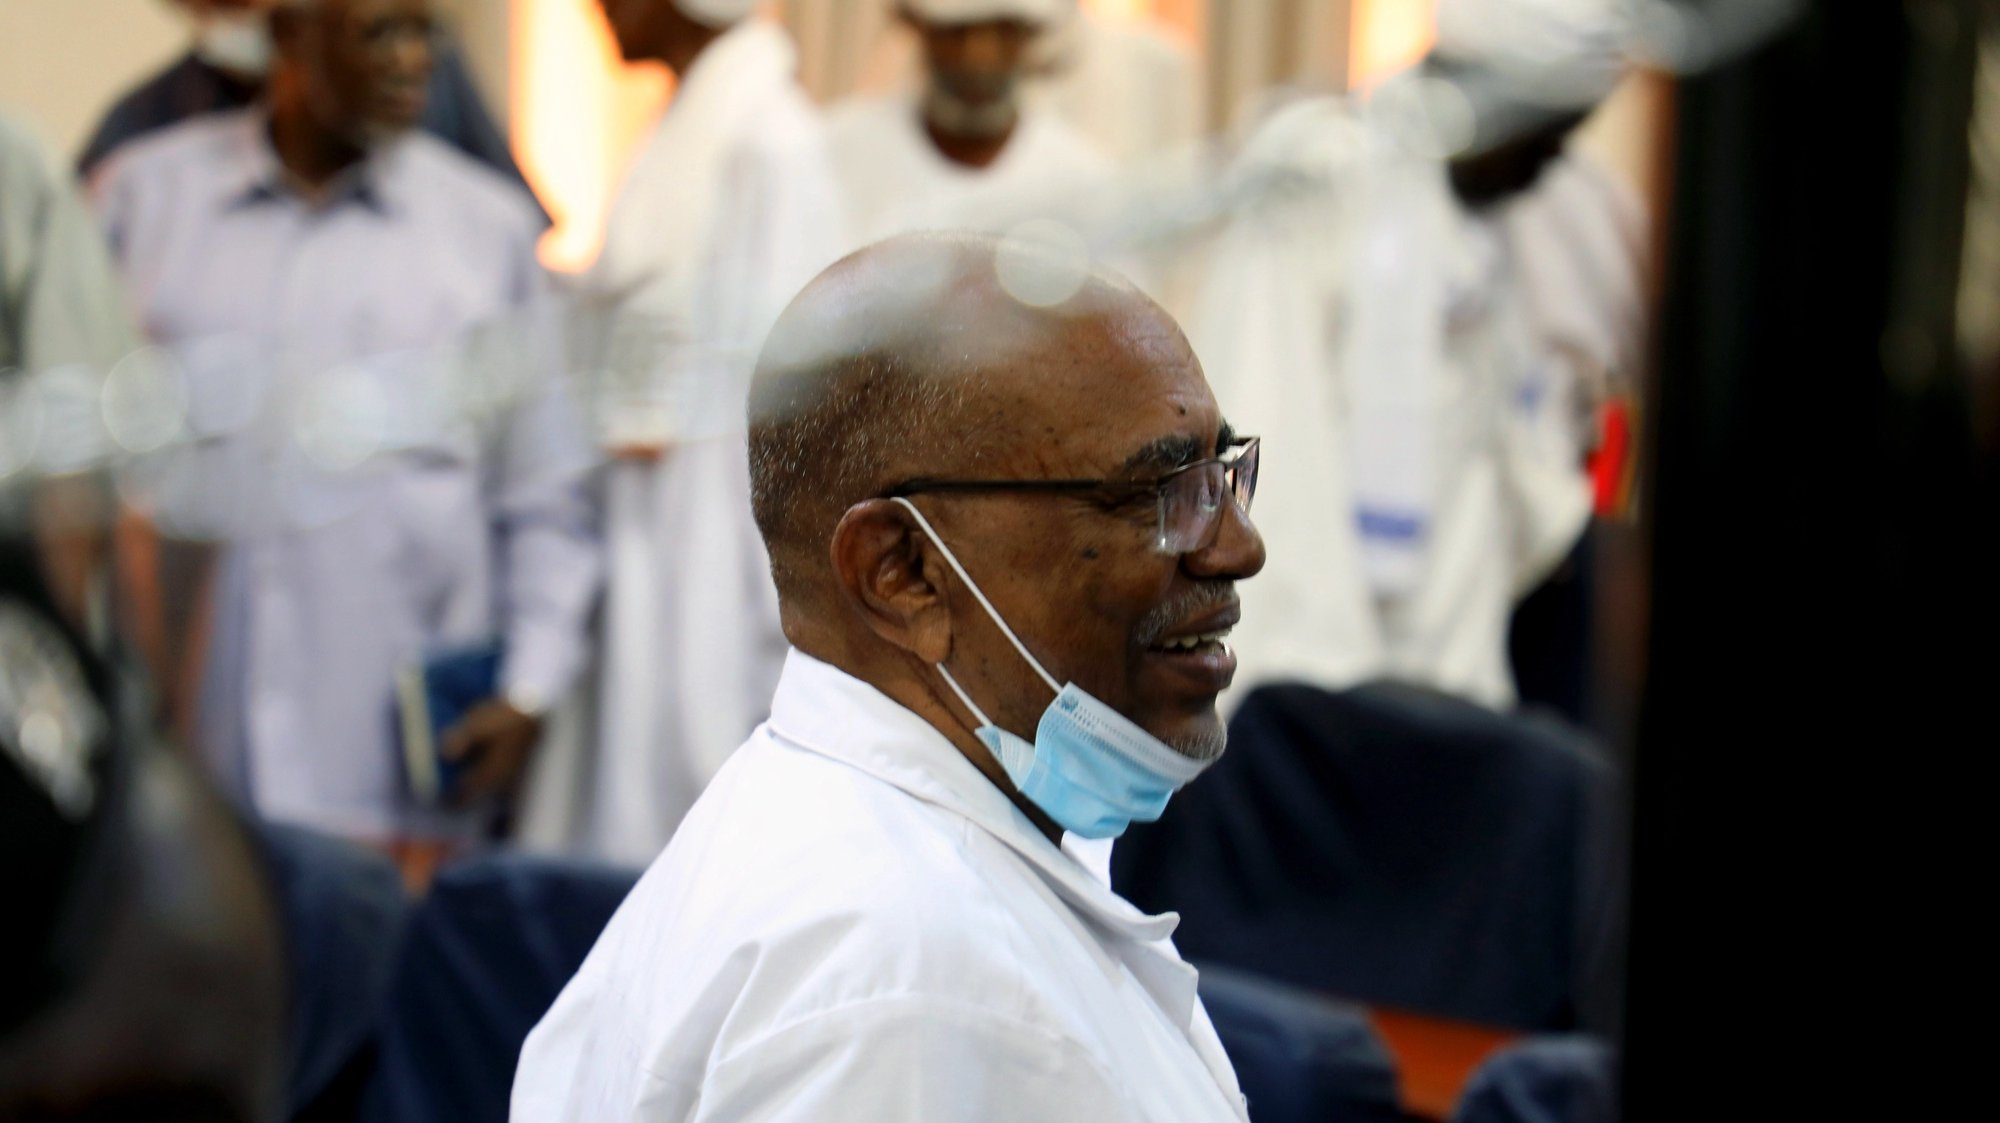 epa08724080 Ousted Sudanese President Omar Al-Bashir attends a procedural session of his trial and more than 20 others for their role in the 1989 military takeover of the government, Khartoum, Sudan, 06 October 2020. Five procedural sessions were held since the trial began on 21 July over charges against the former Sudanese president al-Bashir and more than 20 other people for the 1989 military takeover of the country.  EPA/MOHAMMED ABU OBAID